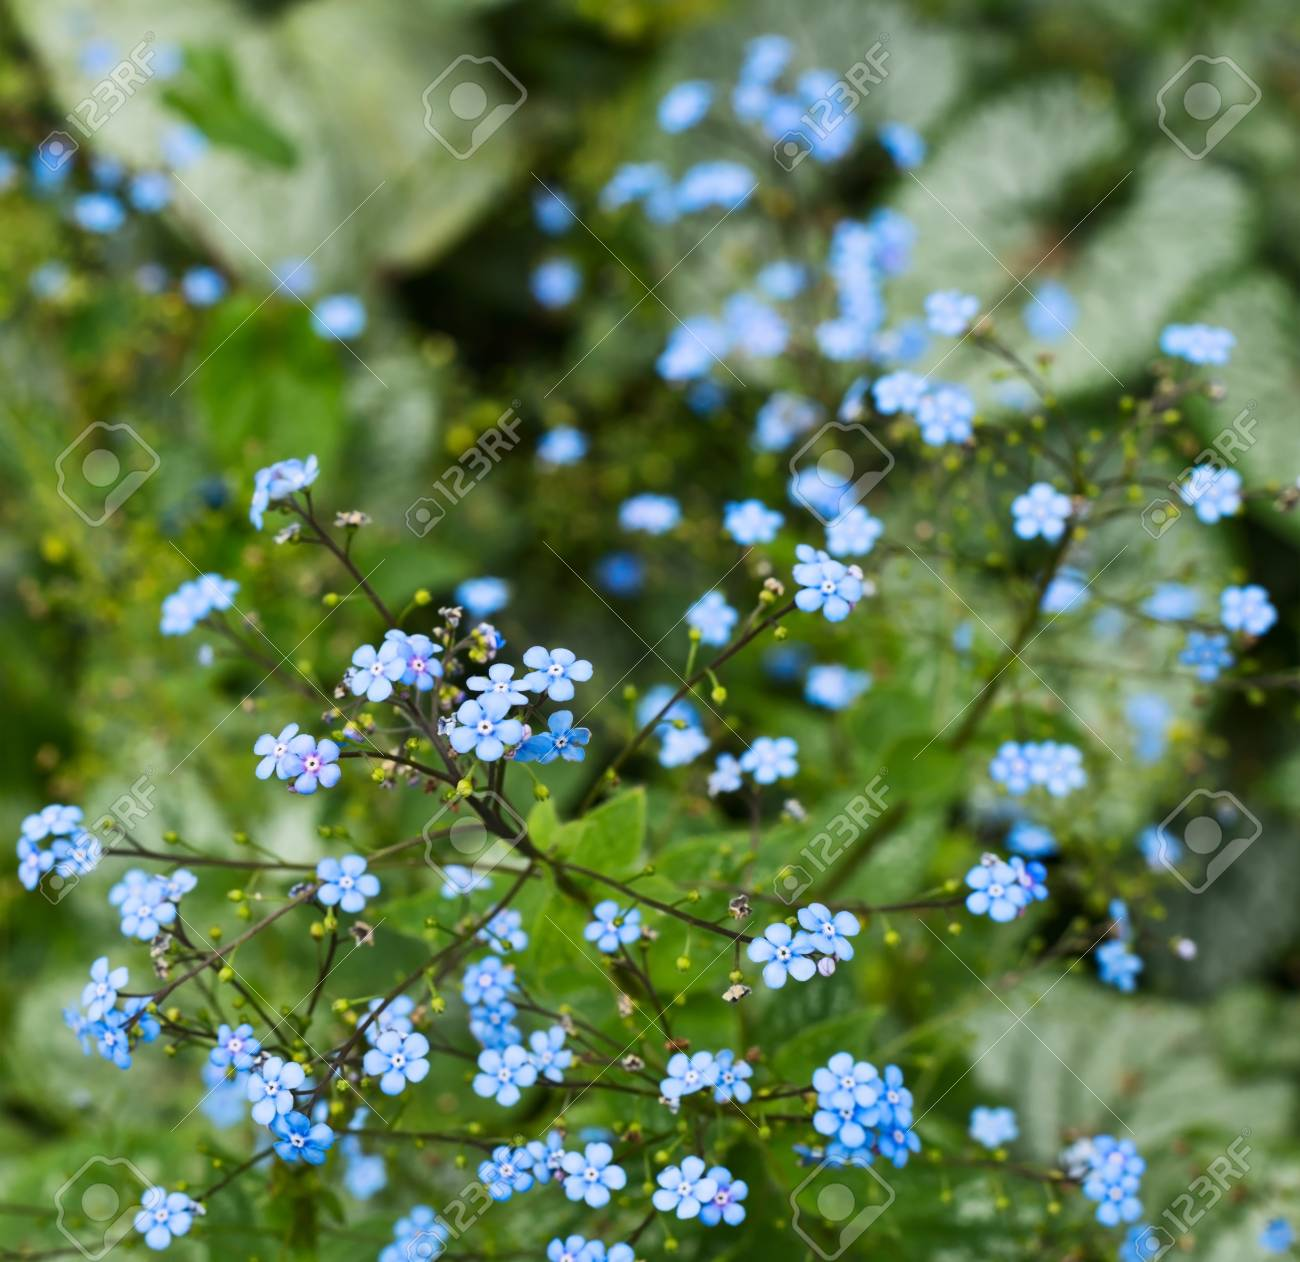 Floral Background Shot Of A Tiny Blue Flowers Stock Photo Picture And Royalty Free Image Image 20464385